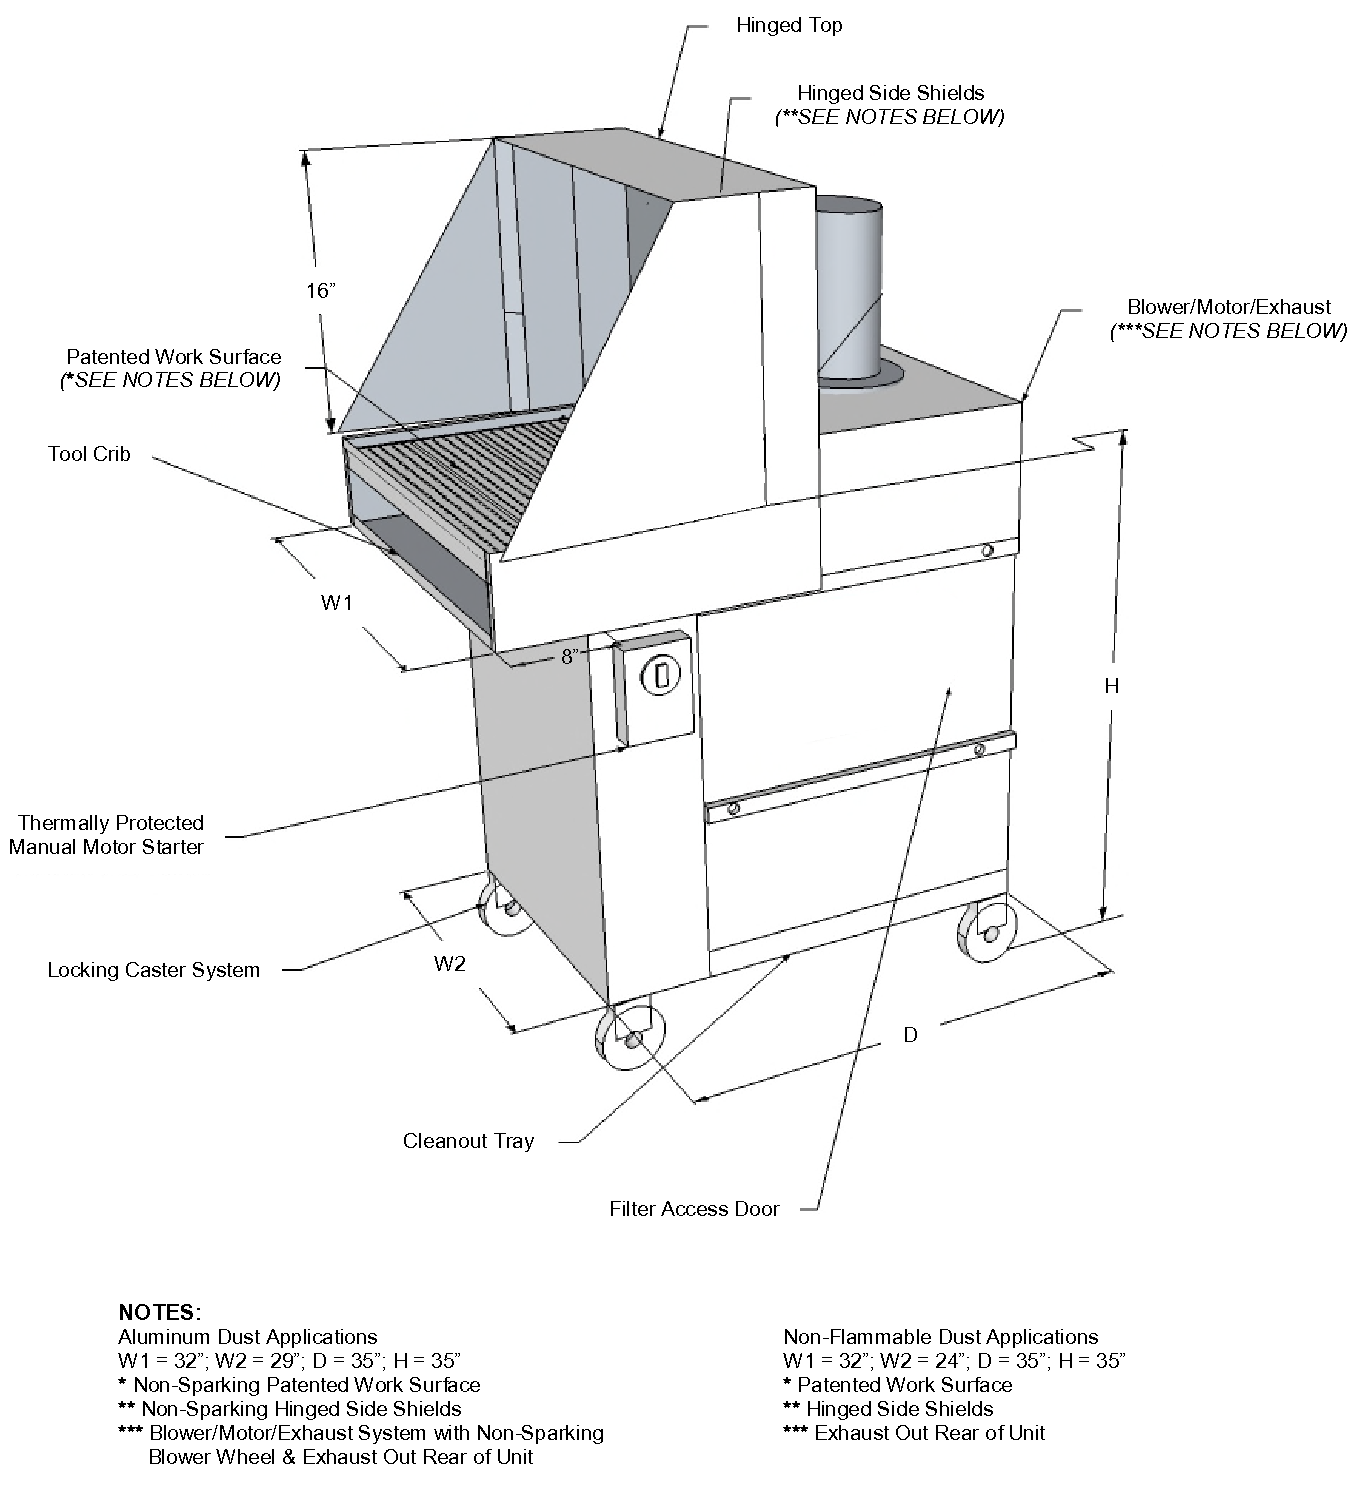 PT2032 portable downdraft table technical drawing